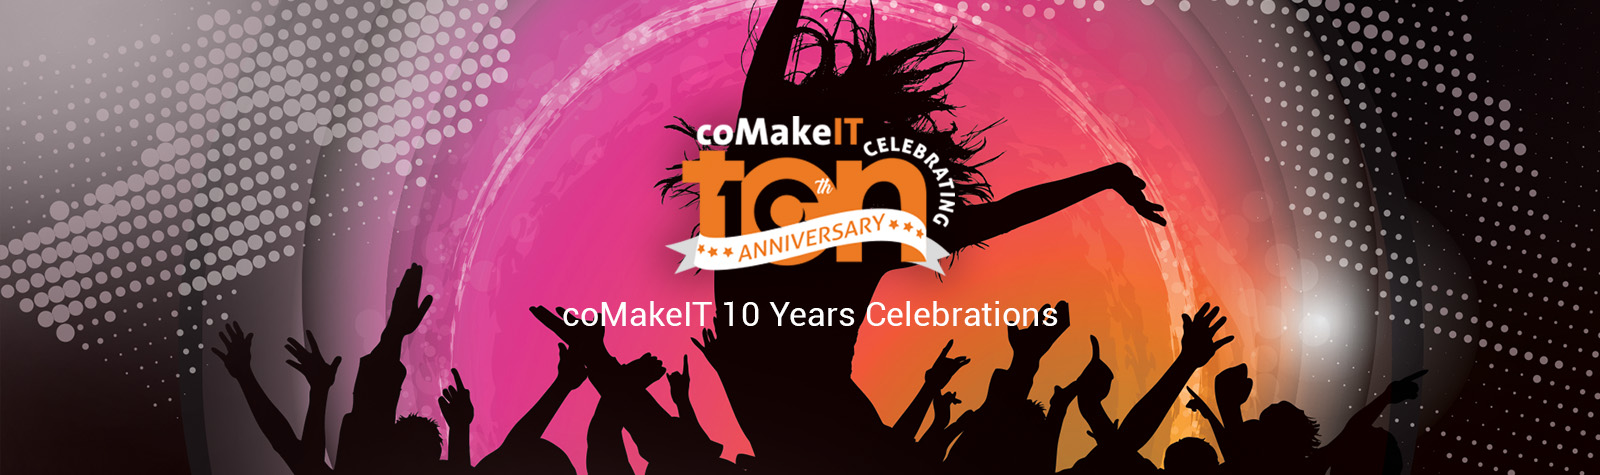 coMakeIT 10 Years Celebrations